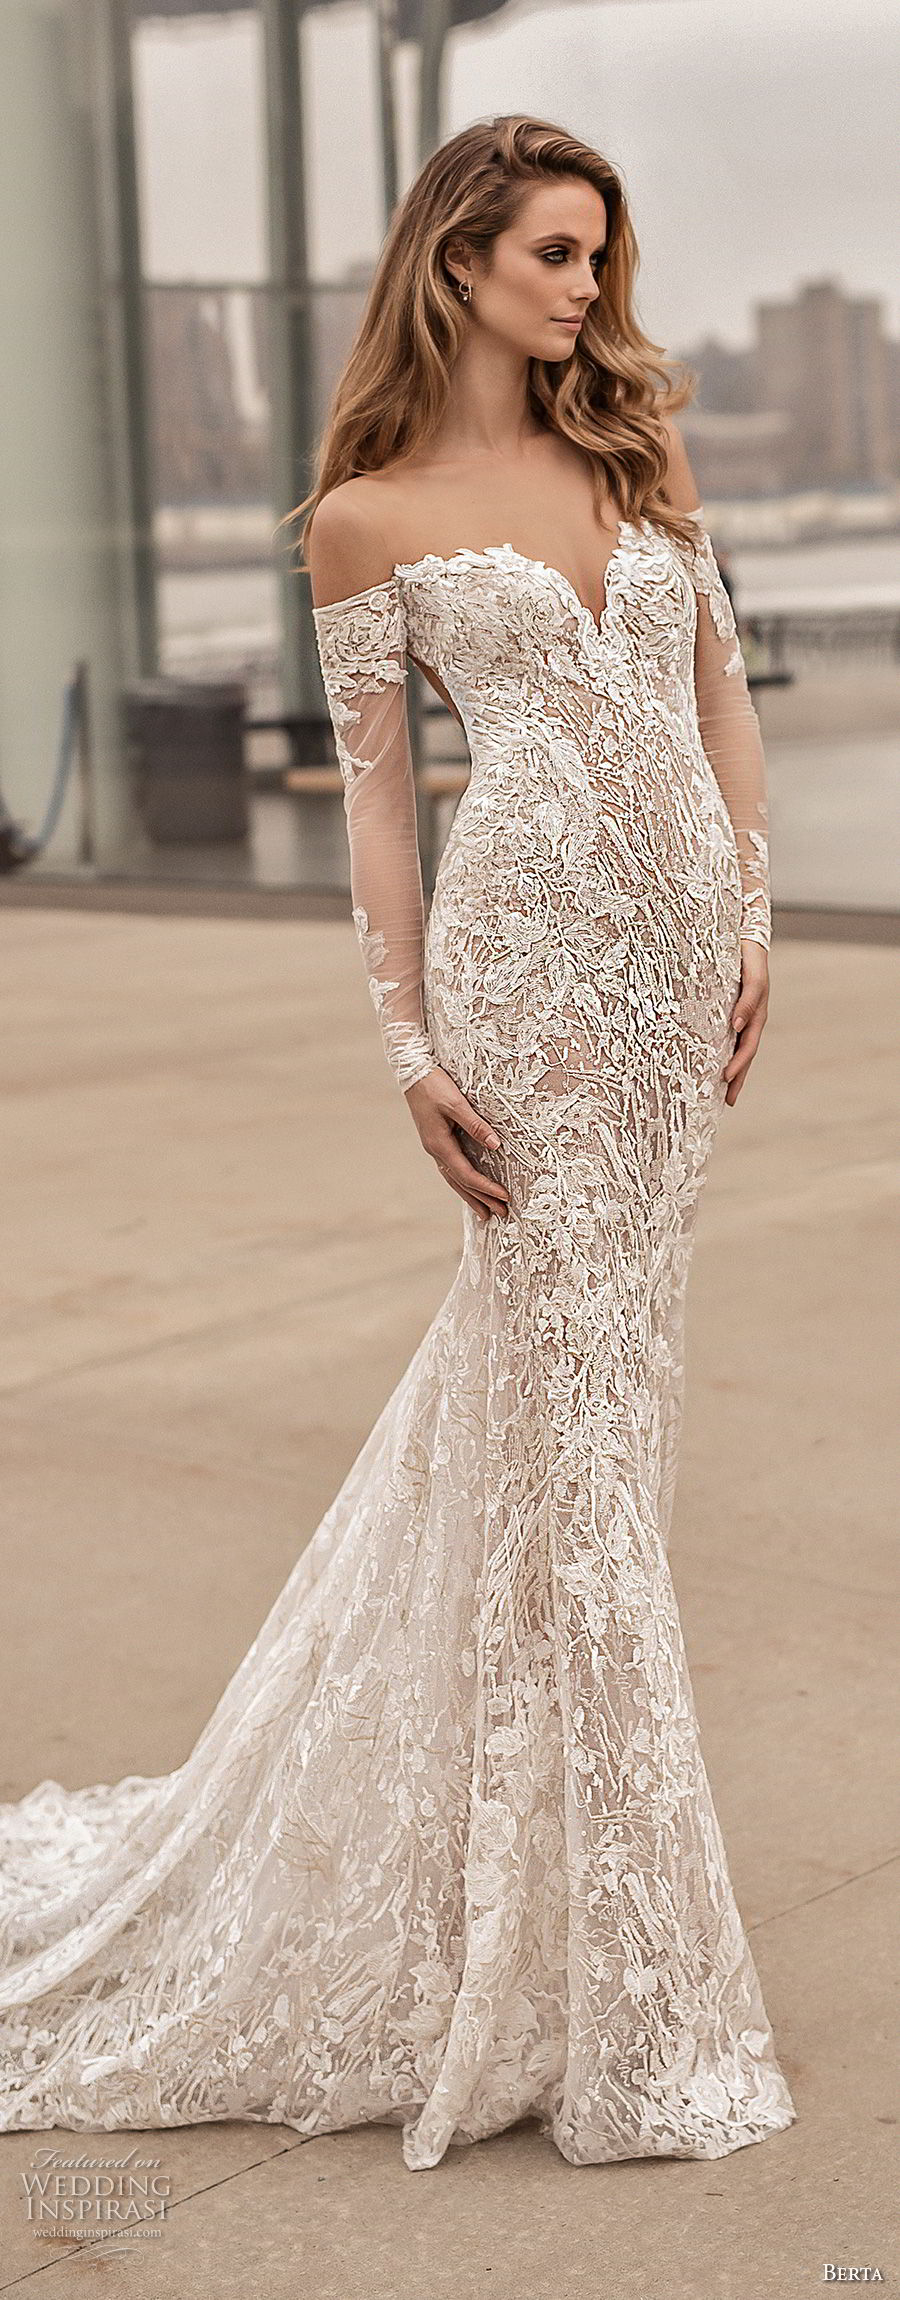 berta spring 2018 bridal long sleeves off the shoulder sweetheart neckline full embellishment sexy elegant fit and flare wedding dress open low back medium train (3) mv